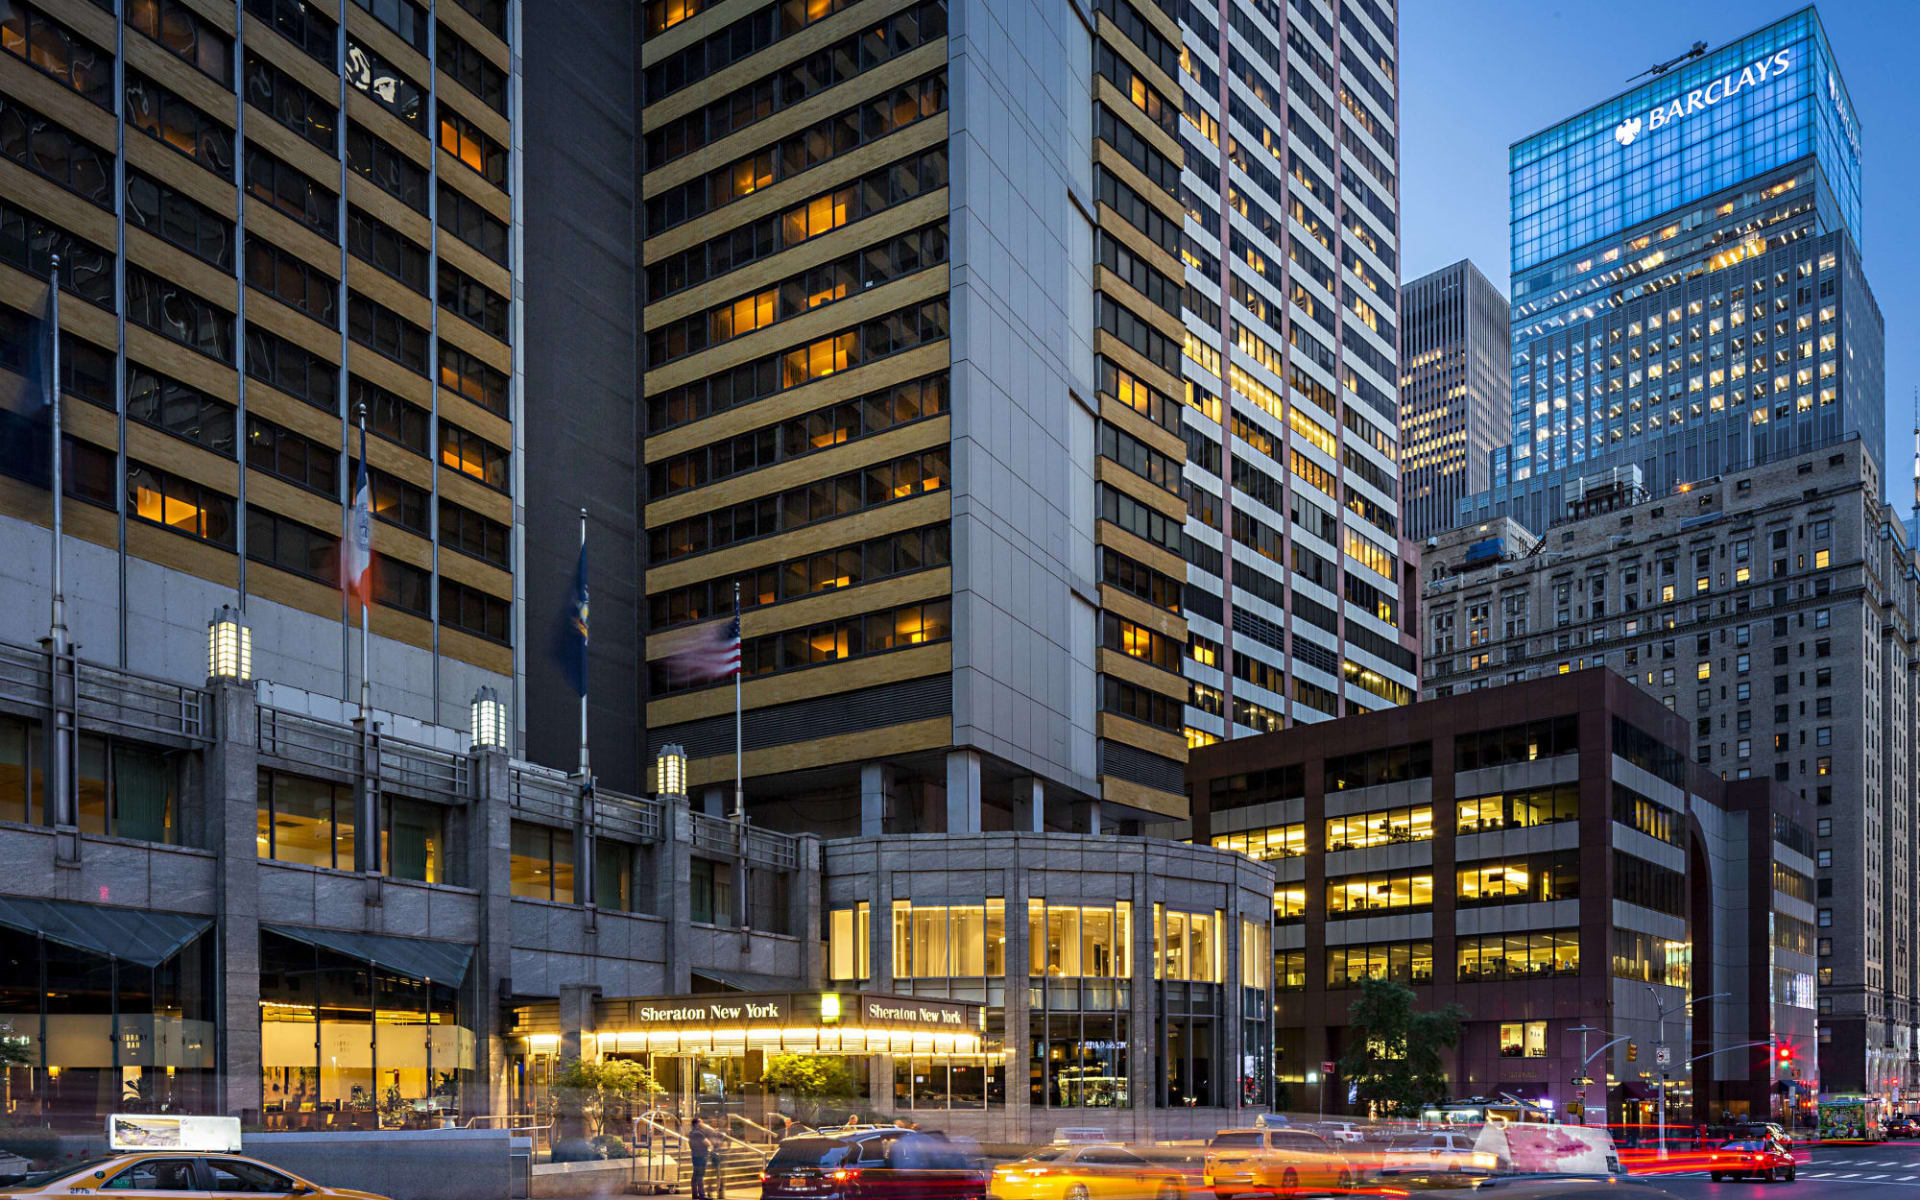 Sheraton Manhattan at Times Square in New York - Manhattan:  Sheraton Times Square - Aussenansicht bei Nacht